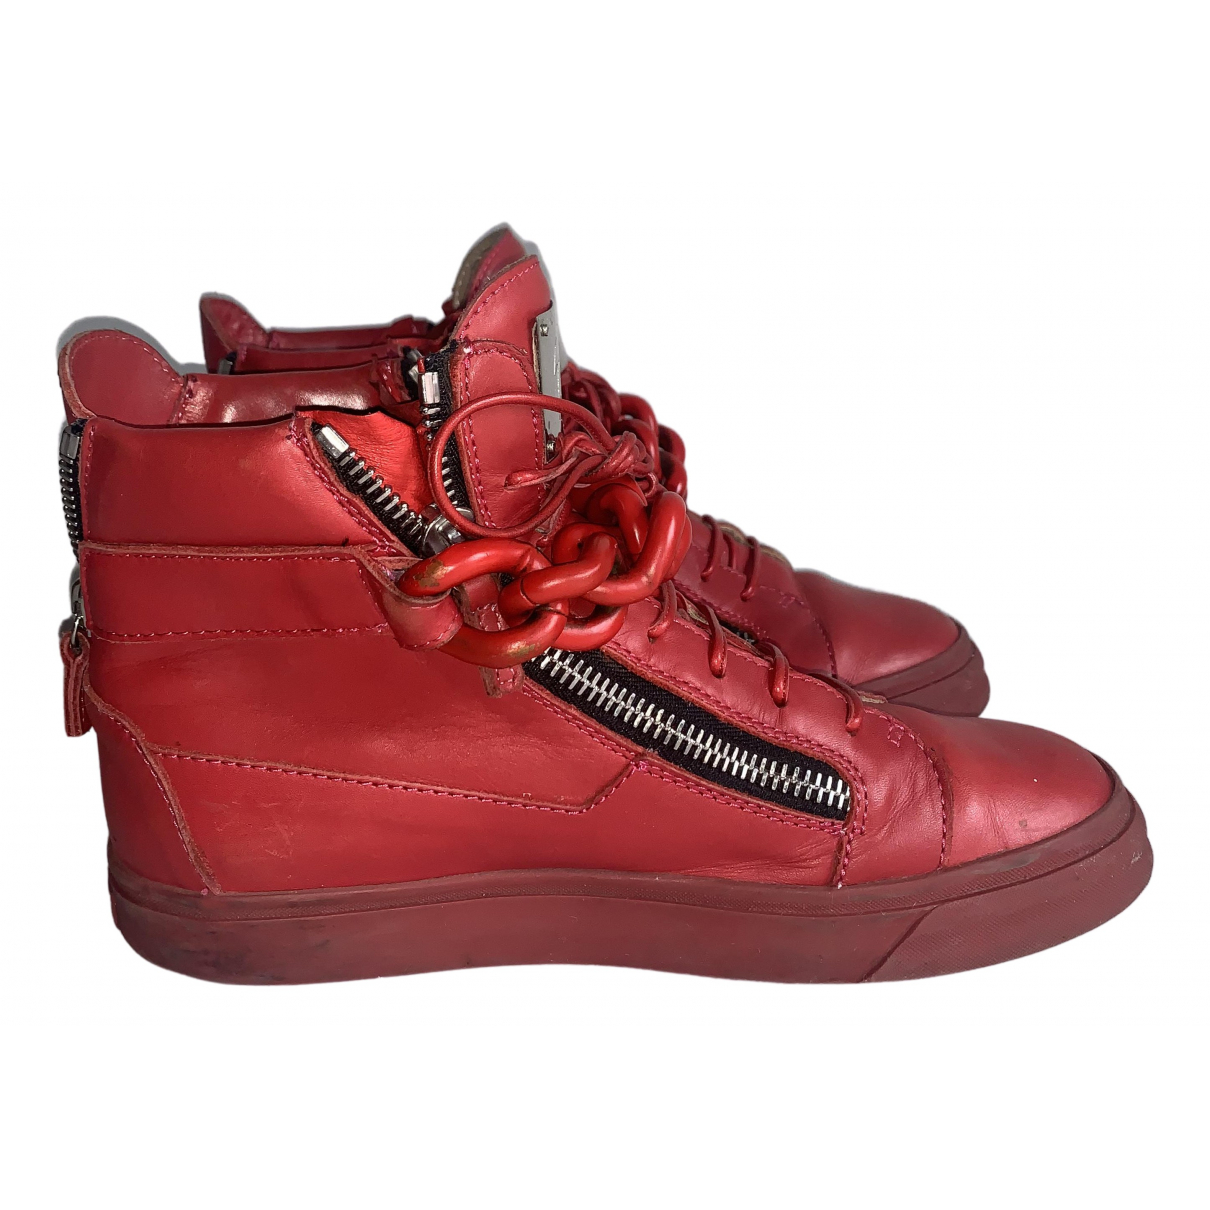 Giuseppe Zanotti Donna Red Leather Trainers for Women 40 EU